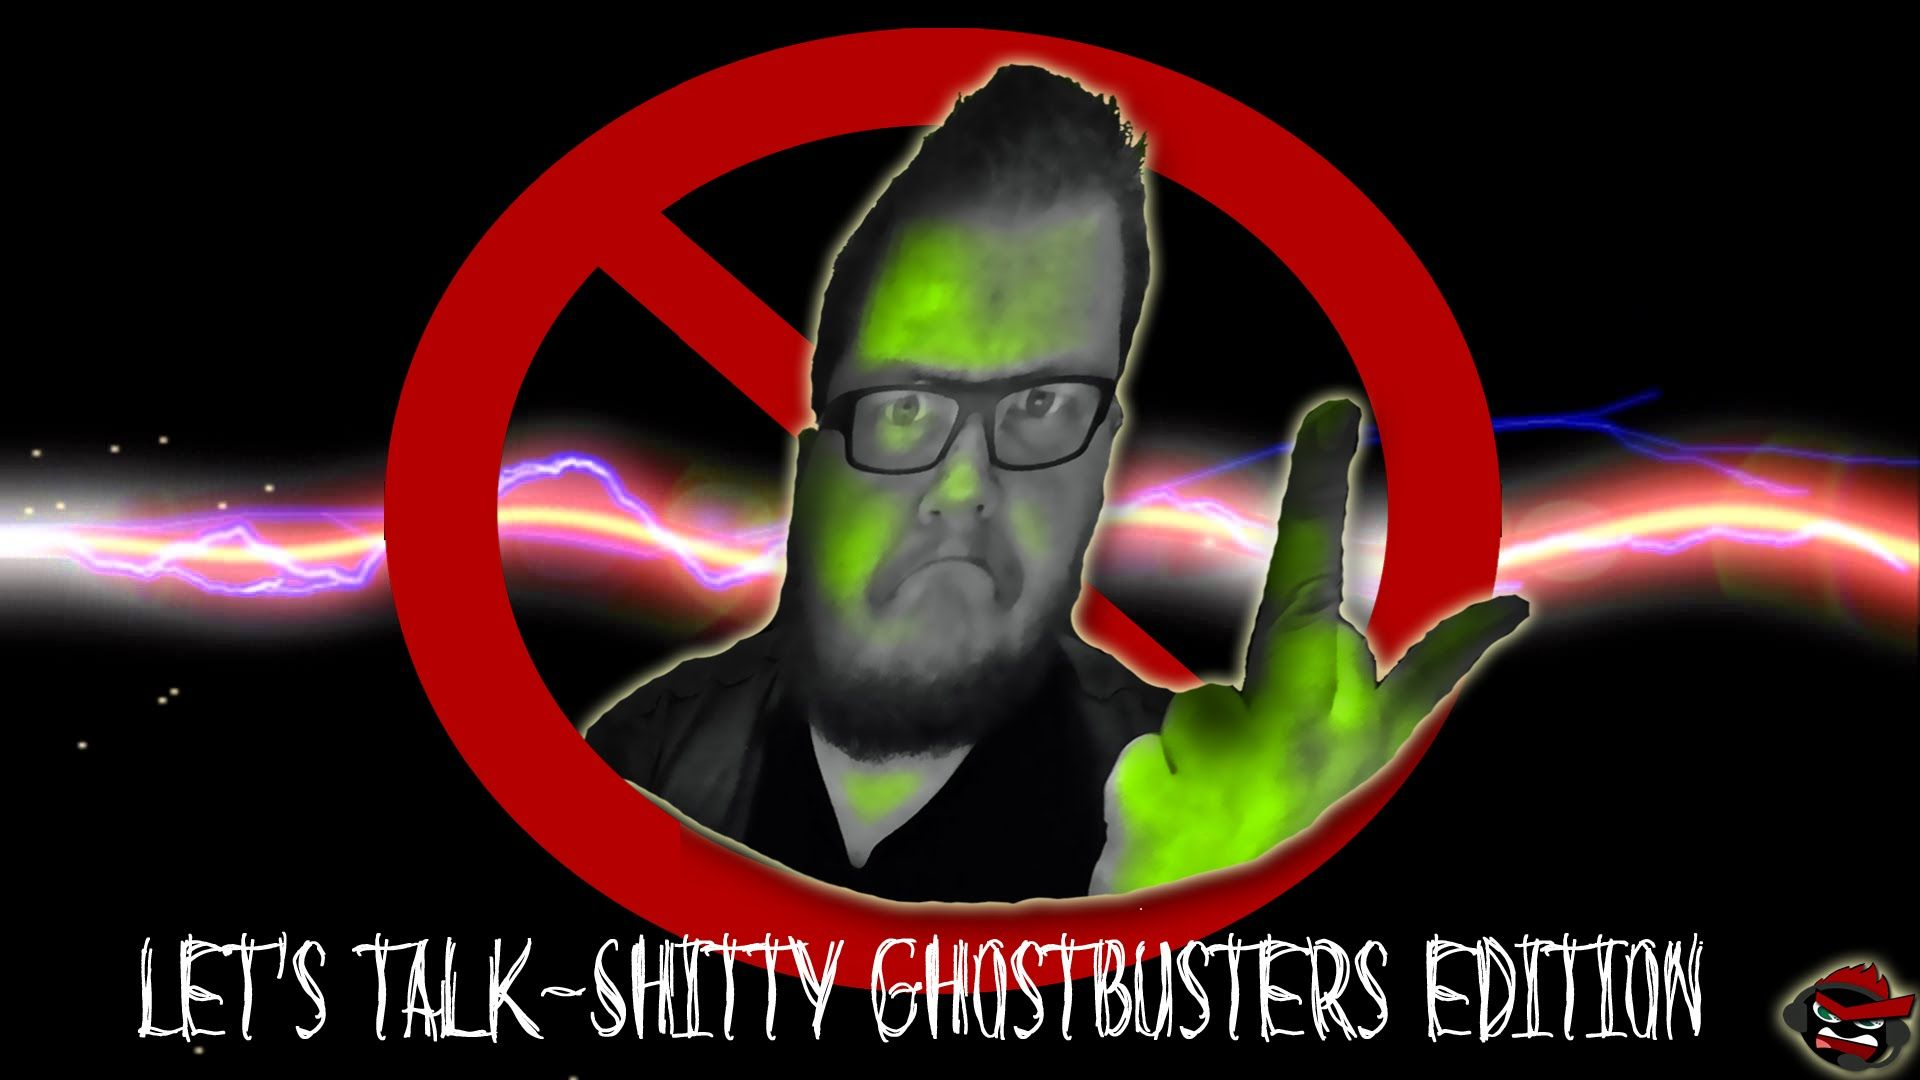 Let's Talk - Equality and the shitty Ghostbusters Trailers